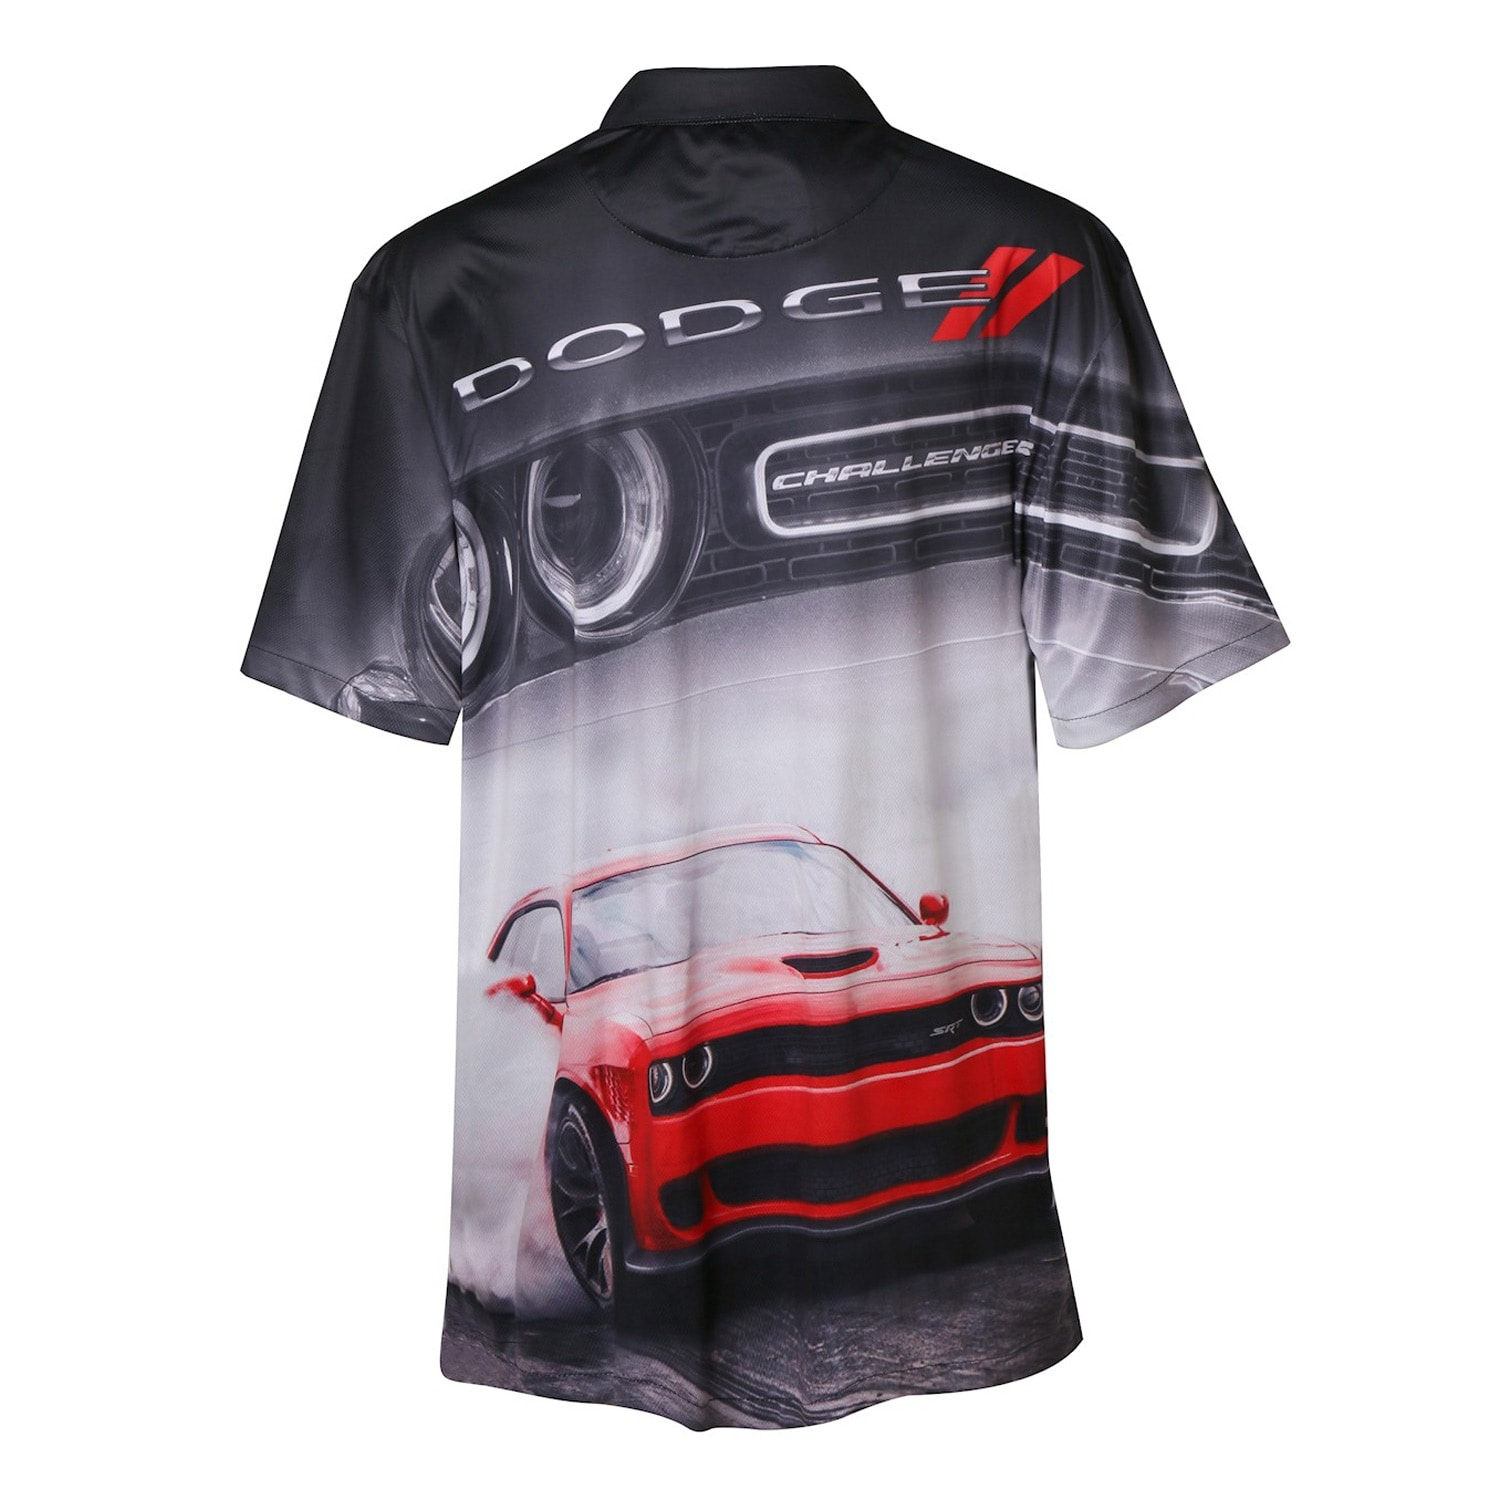 98606c8e T Shirts Dodge Challenger – EDGE Engineering and Consulting Limited